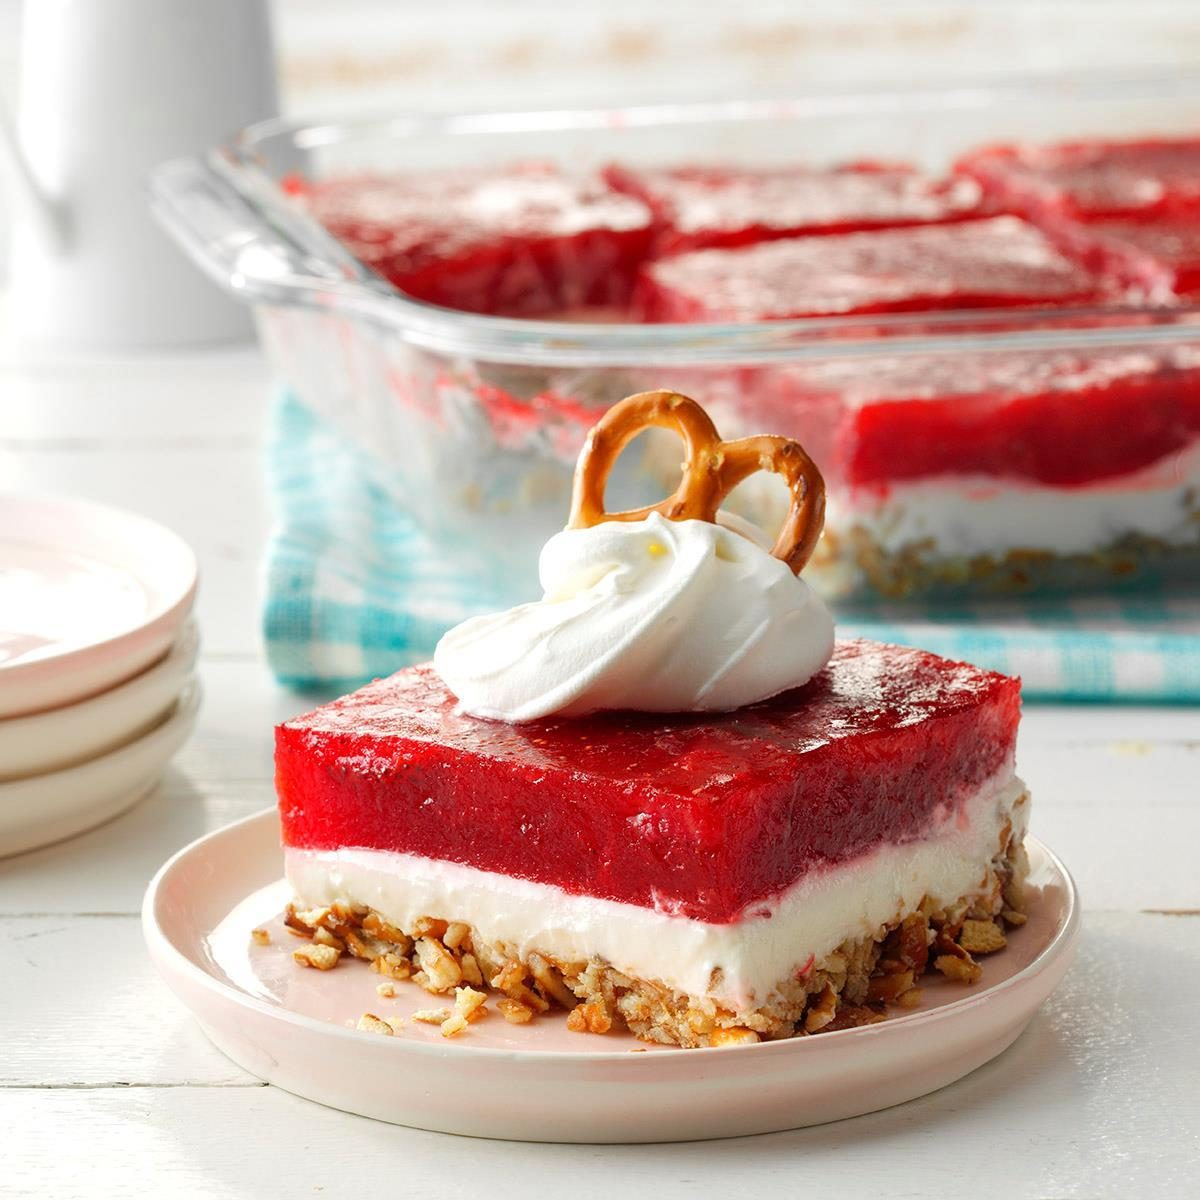 Strawberry Pretzel Dessert Recipe How To Make It Taste Of Home